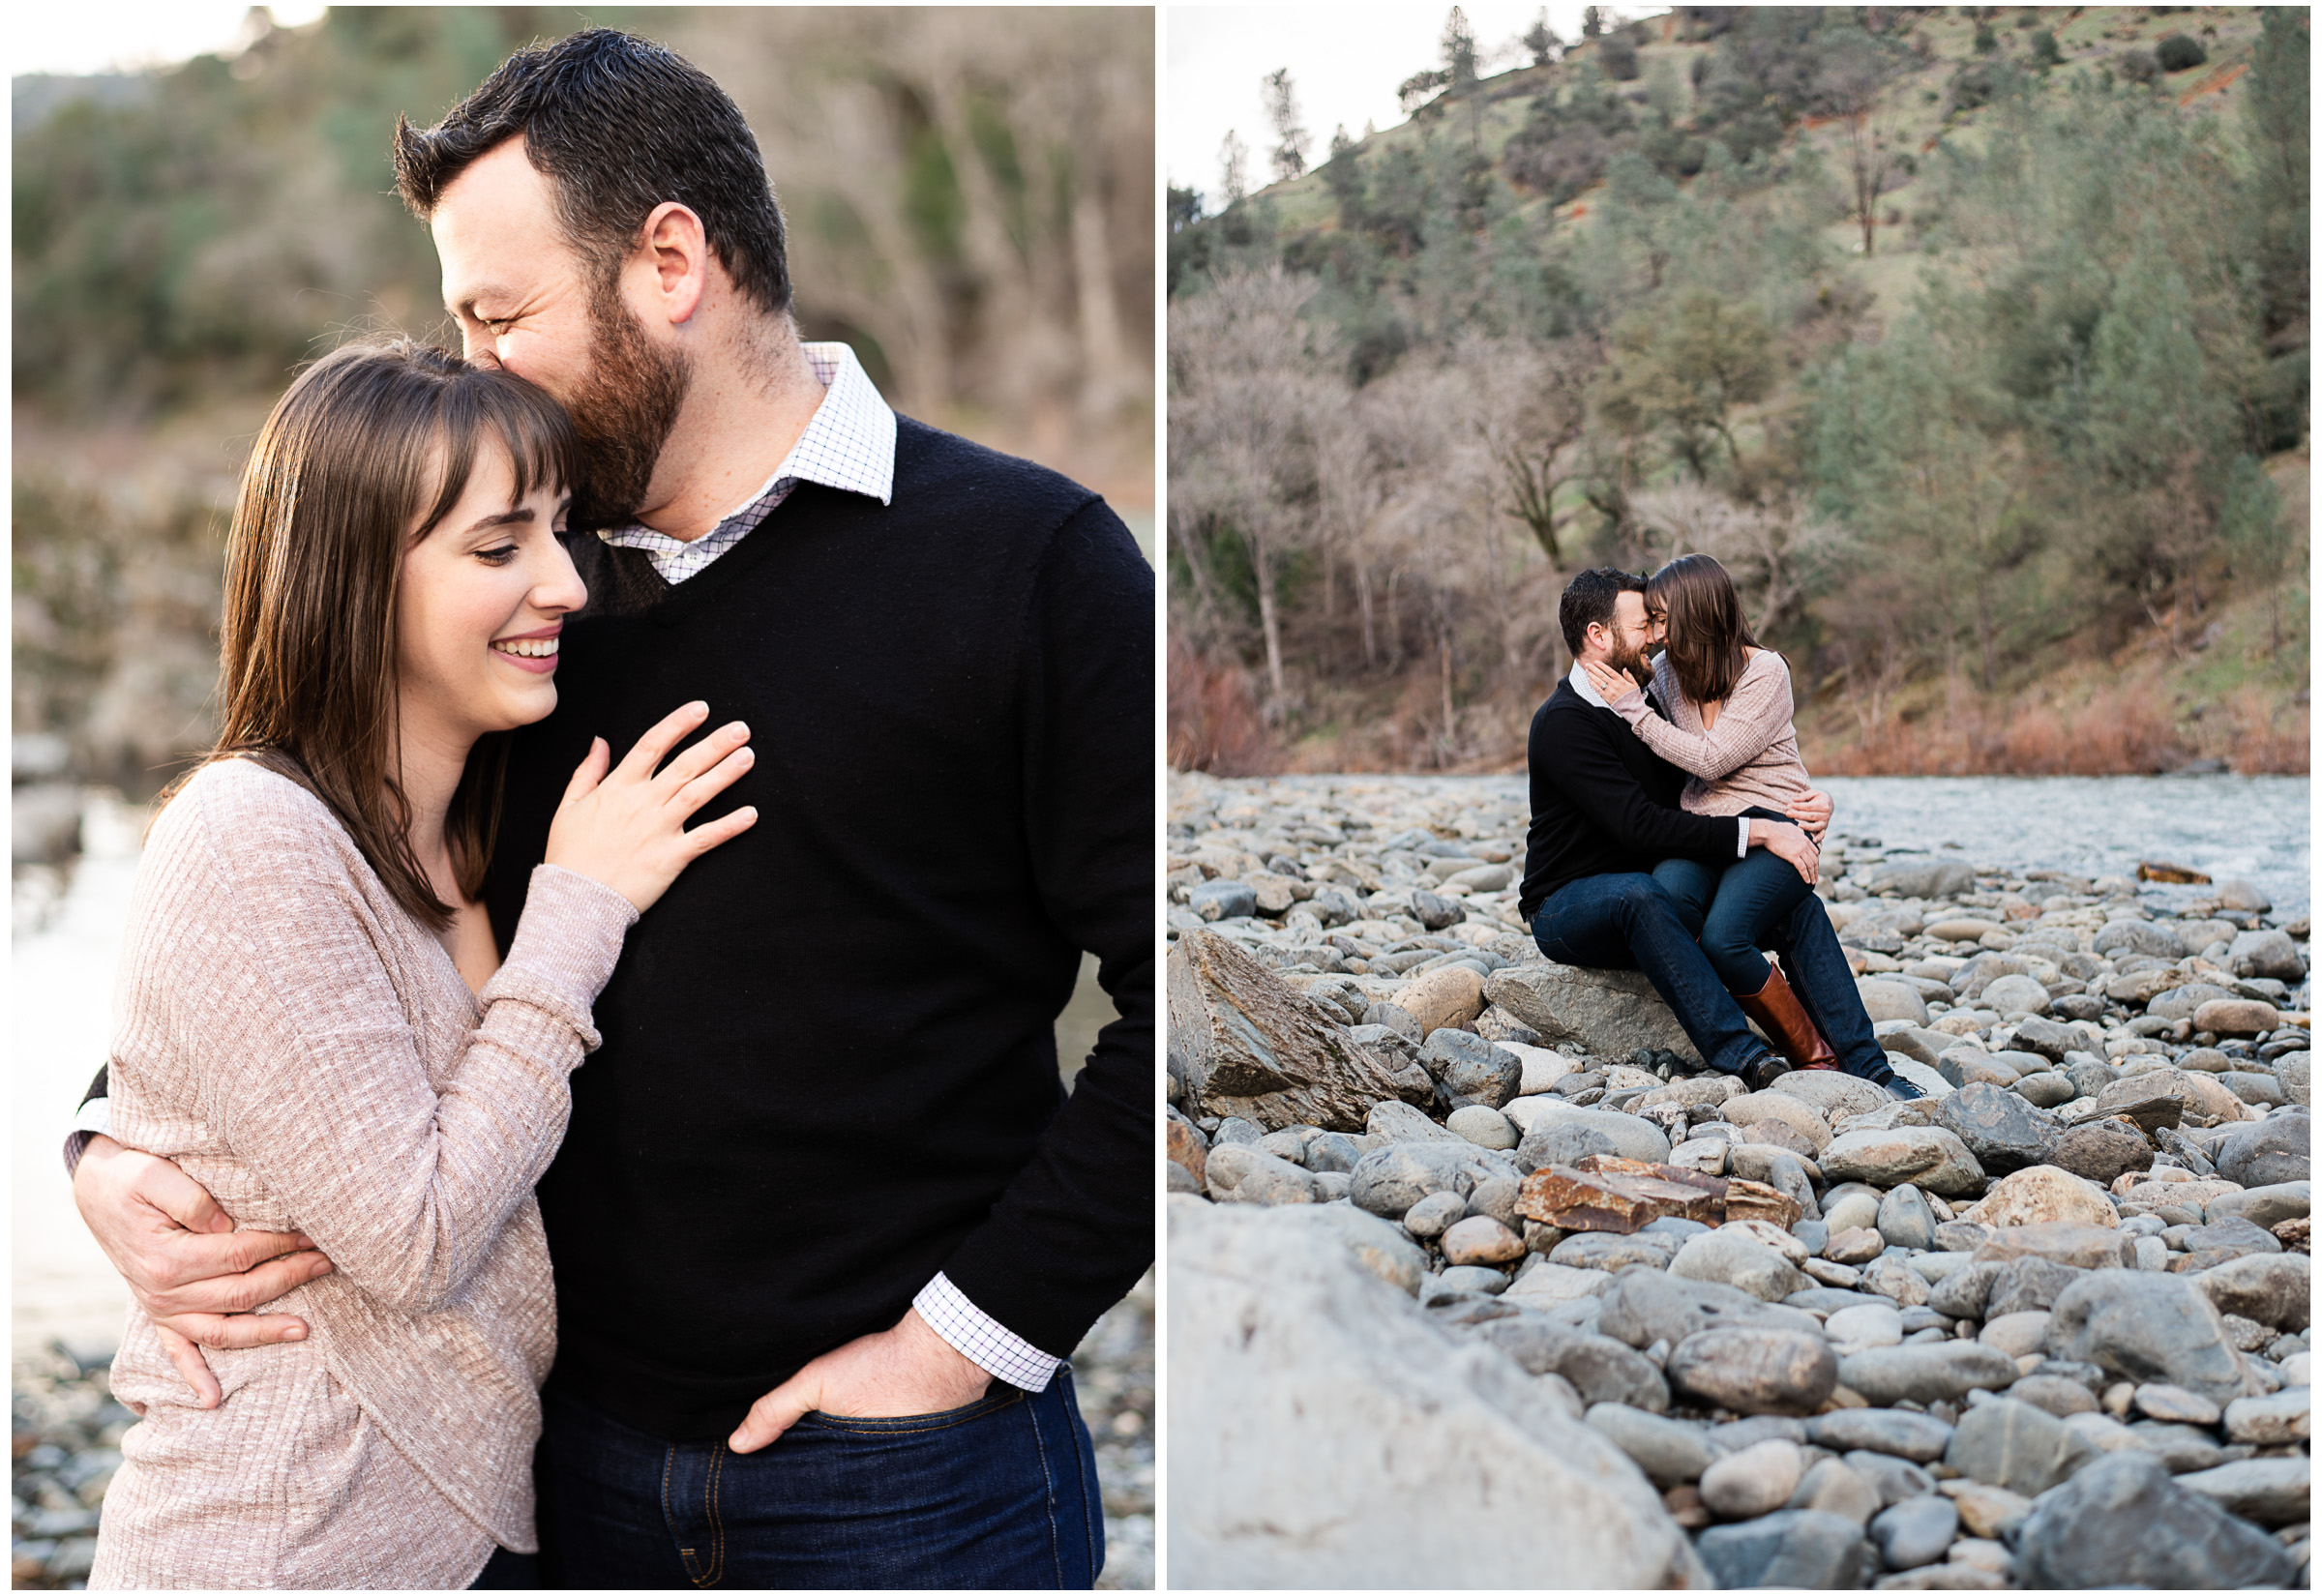 Auburn Engagement Session - Sacramento Photographer - Justin Wilcox Photography - 14.jpg